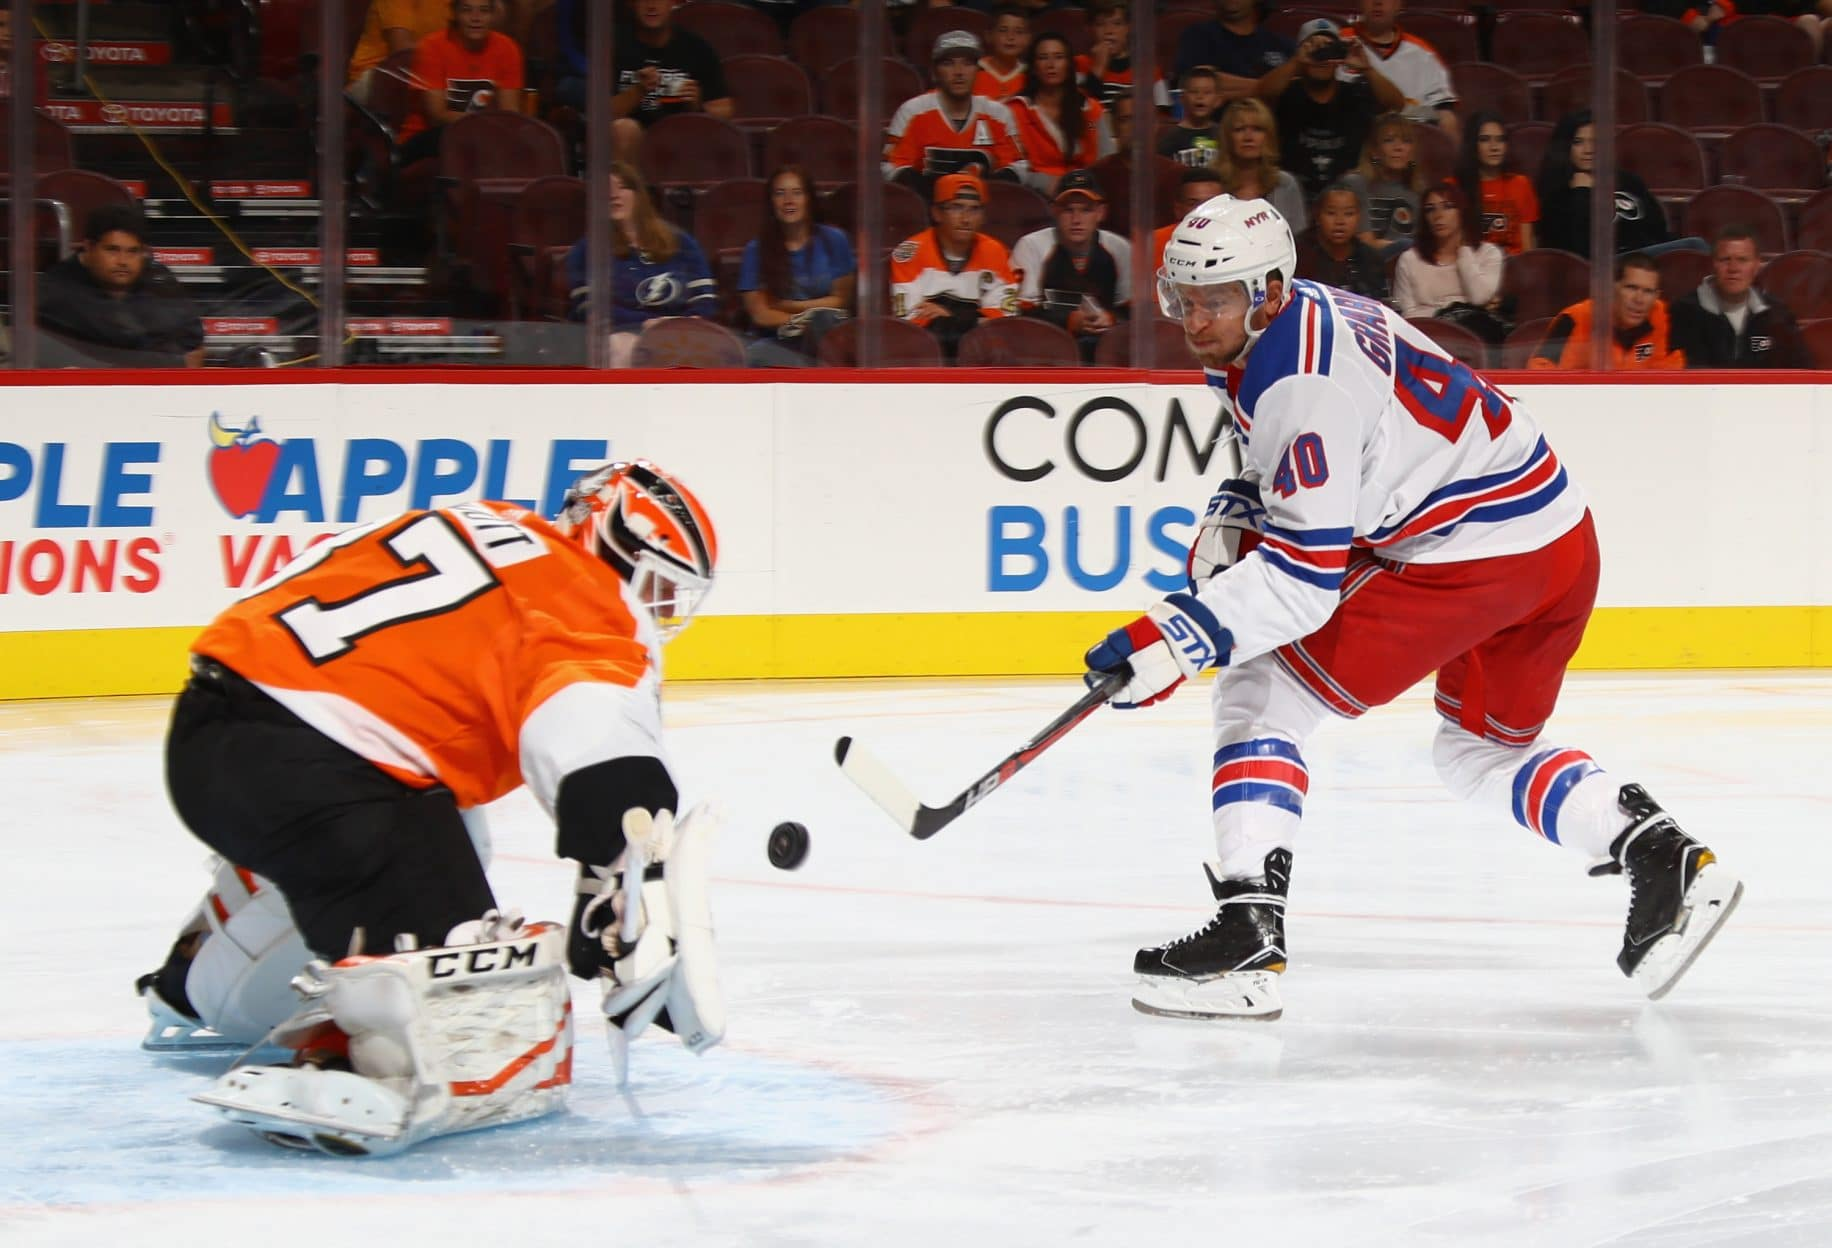 Gettyimages-854384580-new-york-rangers-report-1-16-18-blueshirts-look-to-rebound-vs-flyers